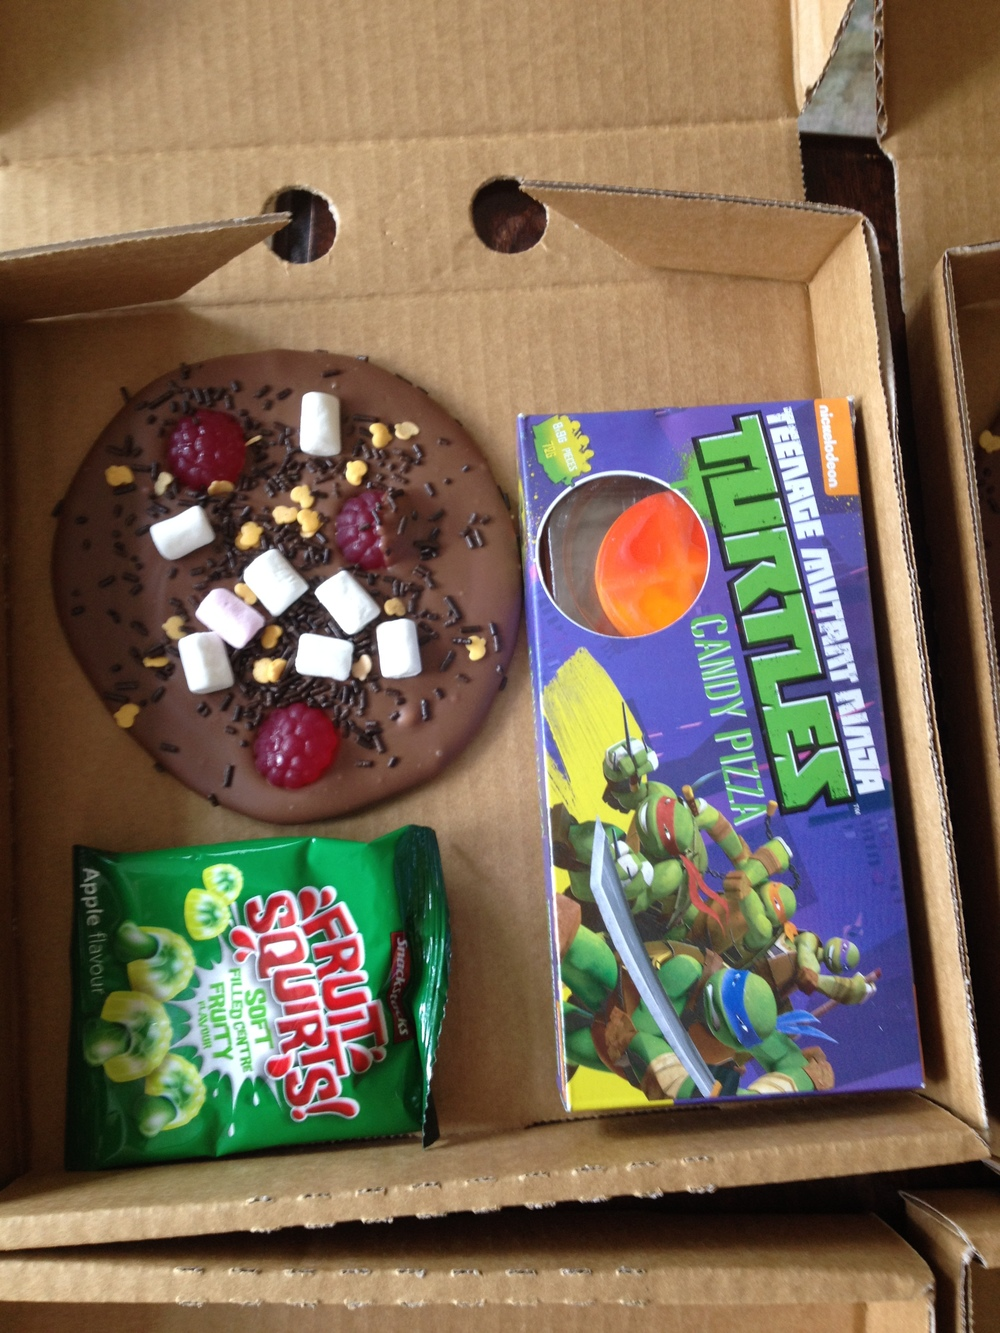 The contents of the lolly boxes, homemade Chocolate Pizza, Fruits quirts &  Ninja Turtle candy pizzas .